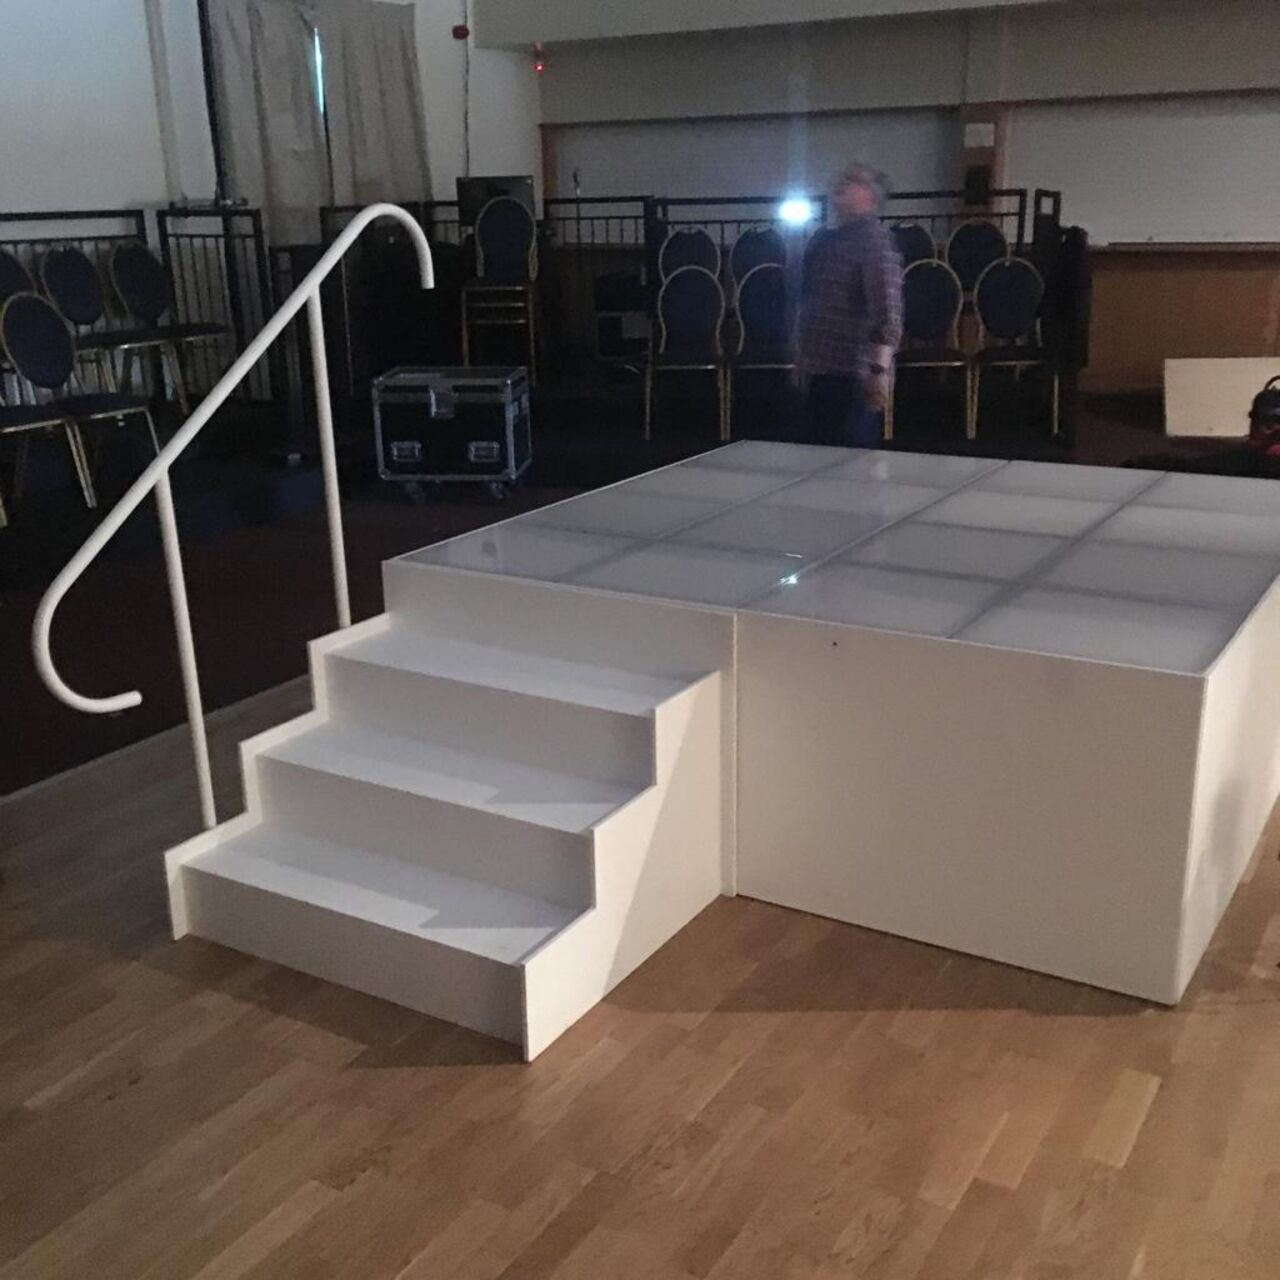 A small white stage with grey lines crossing the top.  A small white staircase with three steps leads up to the stage.  On the left hand side of the stairs is a white hand rail that curves down at each end.